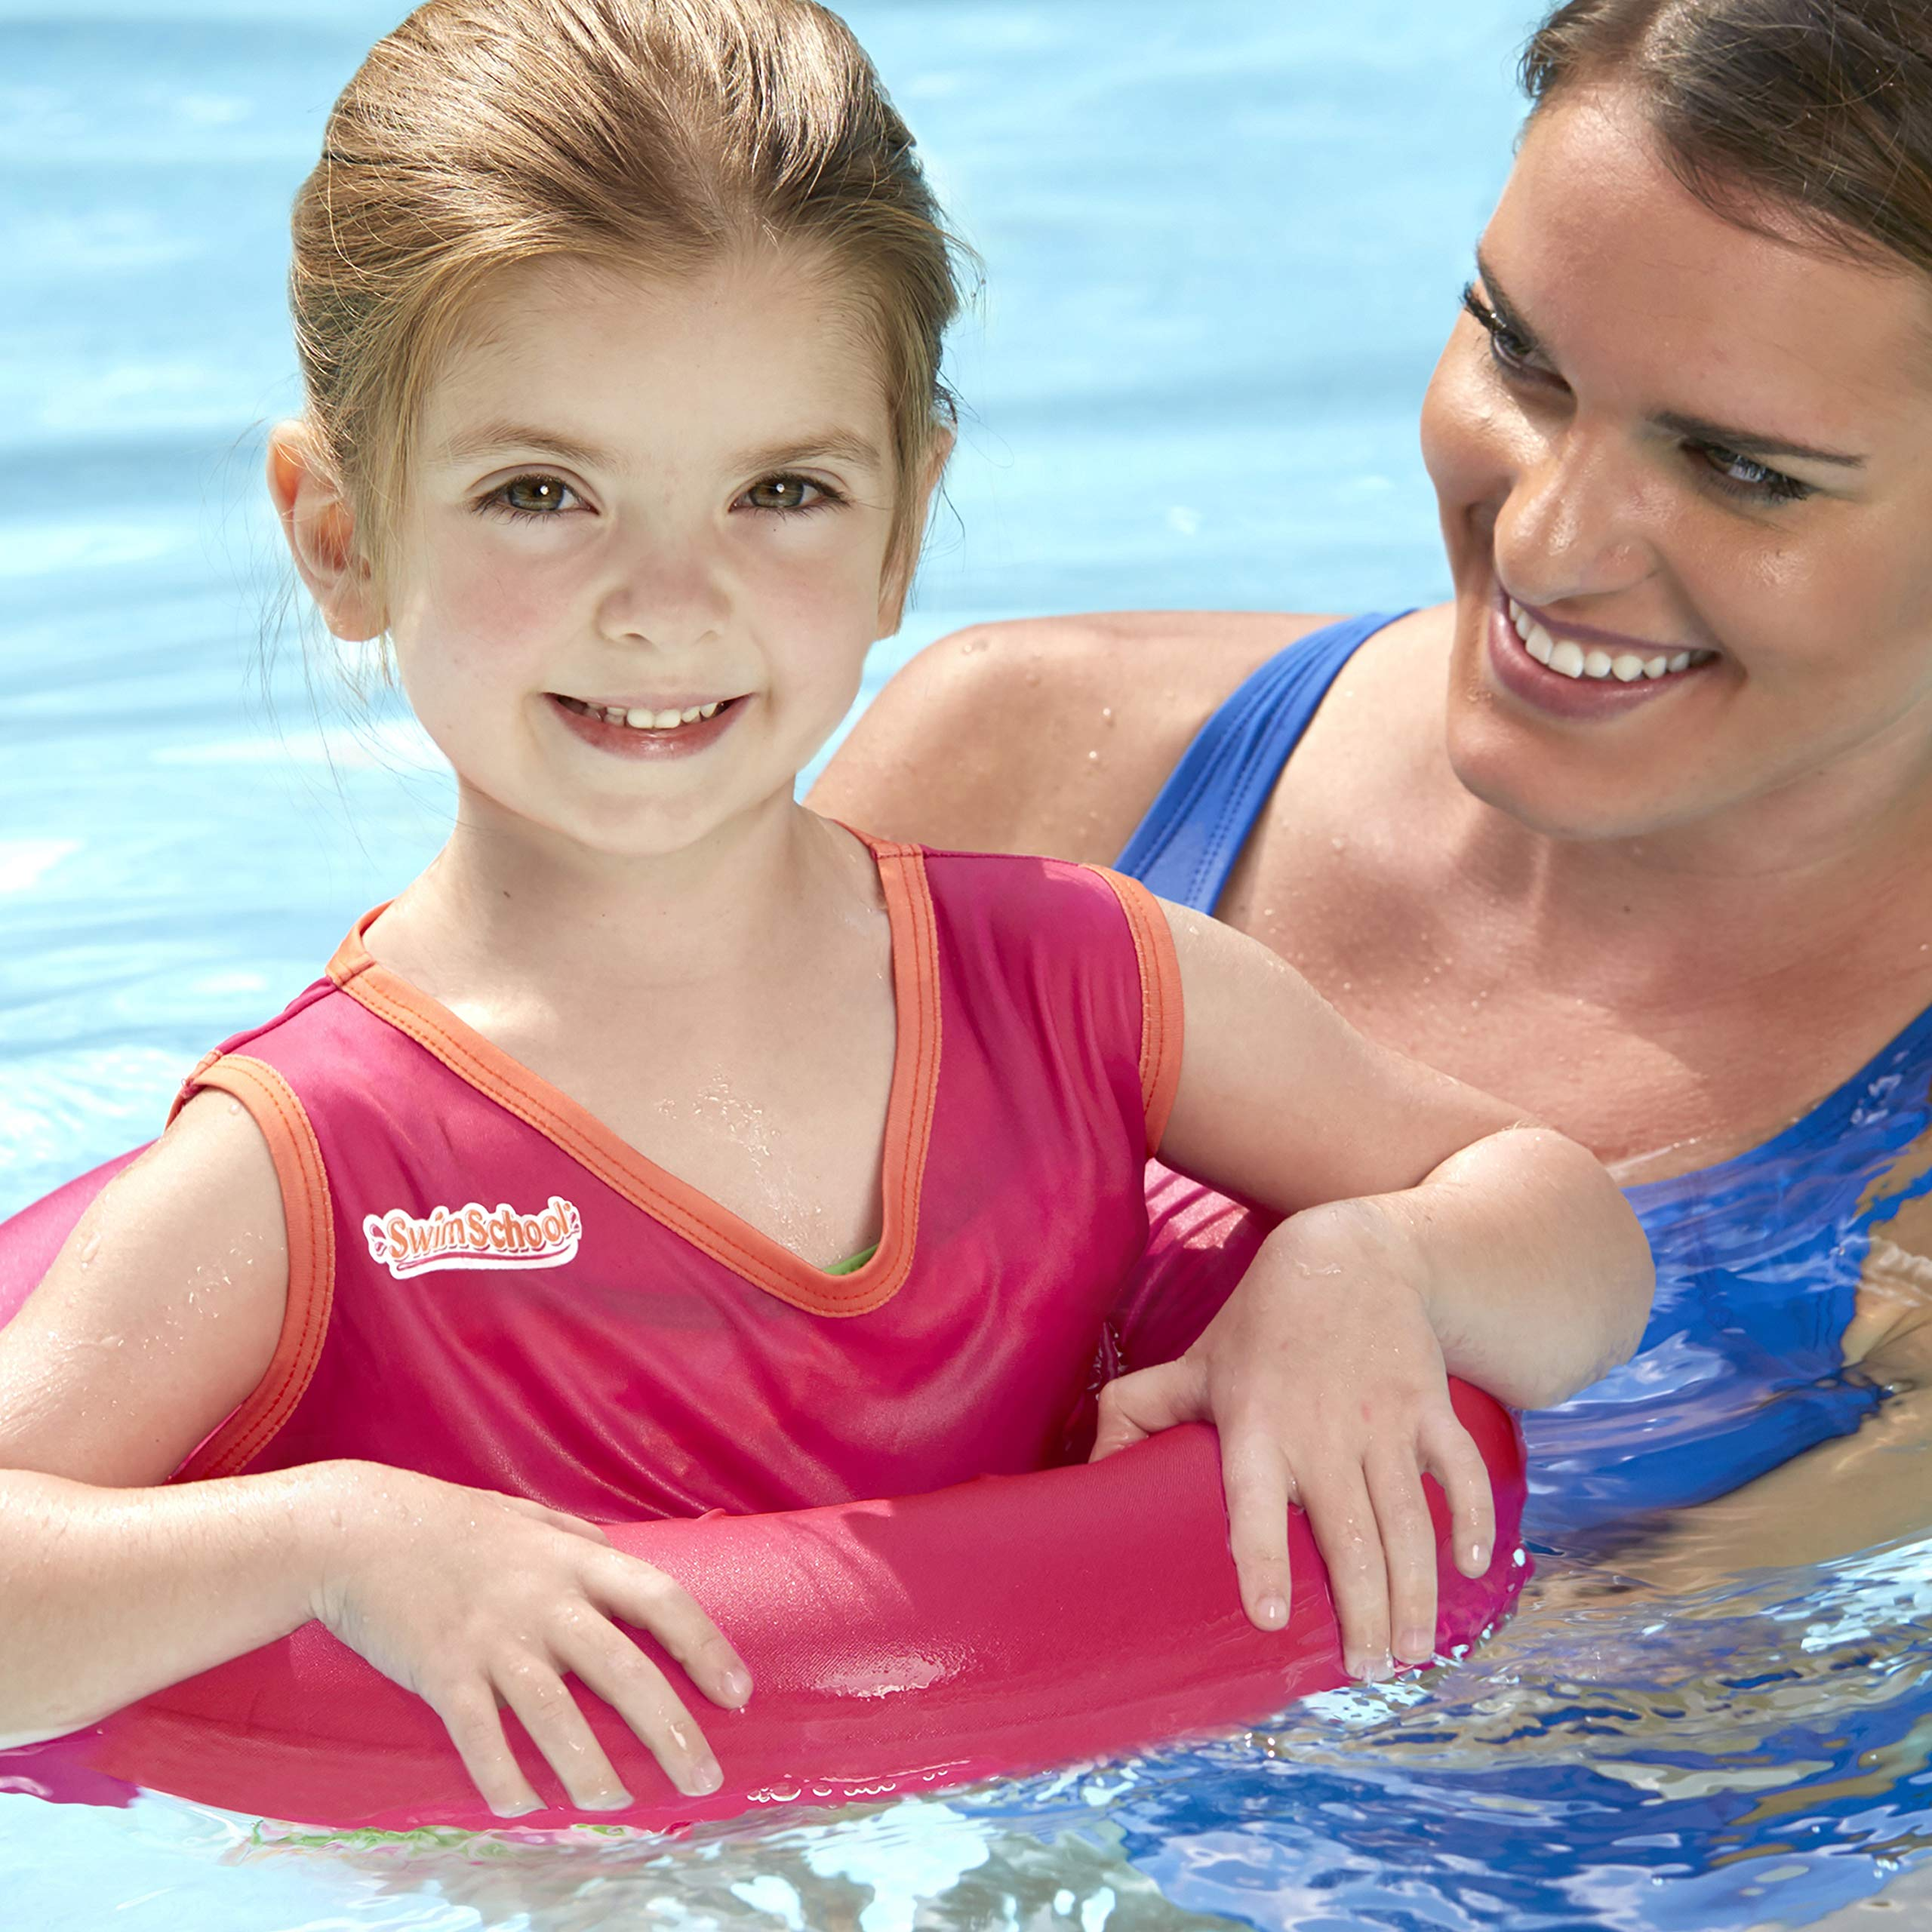 SwimSchool Deluxe TOT Swim Trainer Vest, Heavy Duty, Inflatable Tube with Adjustable Safety Strap, 2-4 Years, Raspberry/Pink by SwimSchool (Image #1)